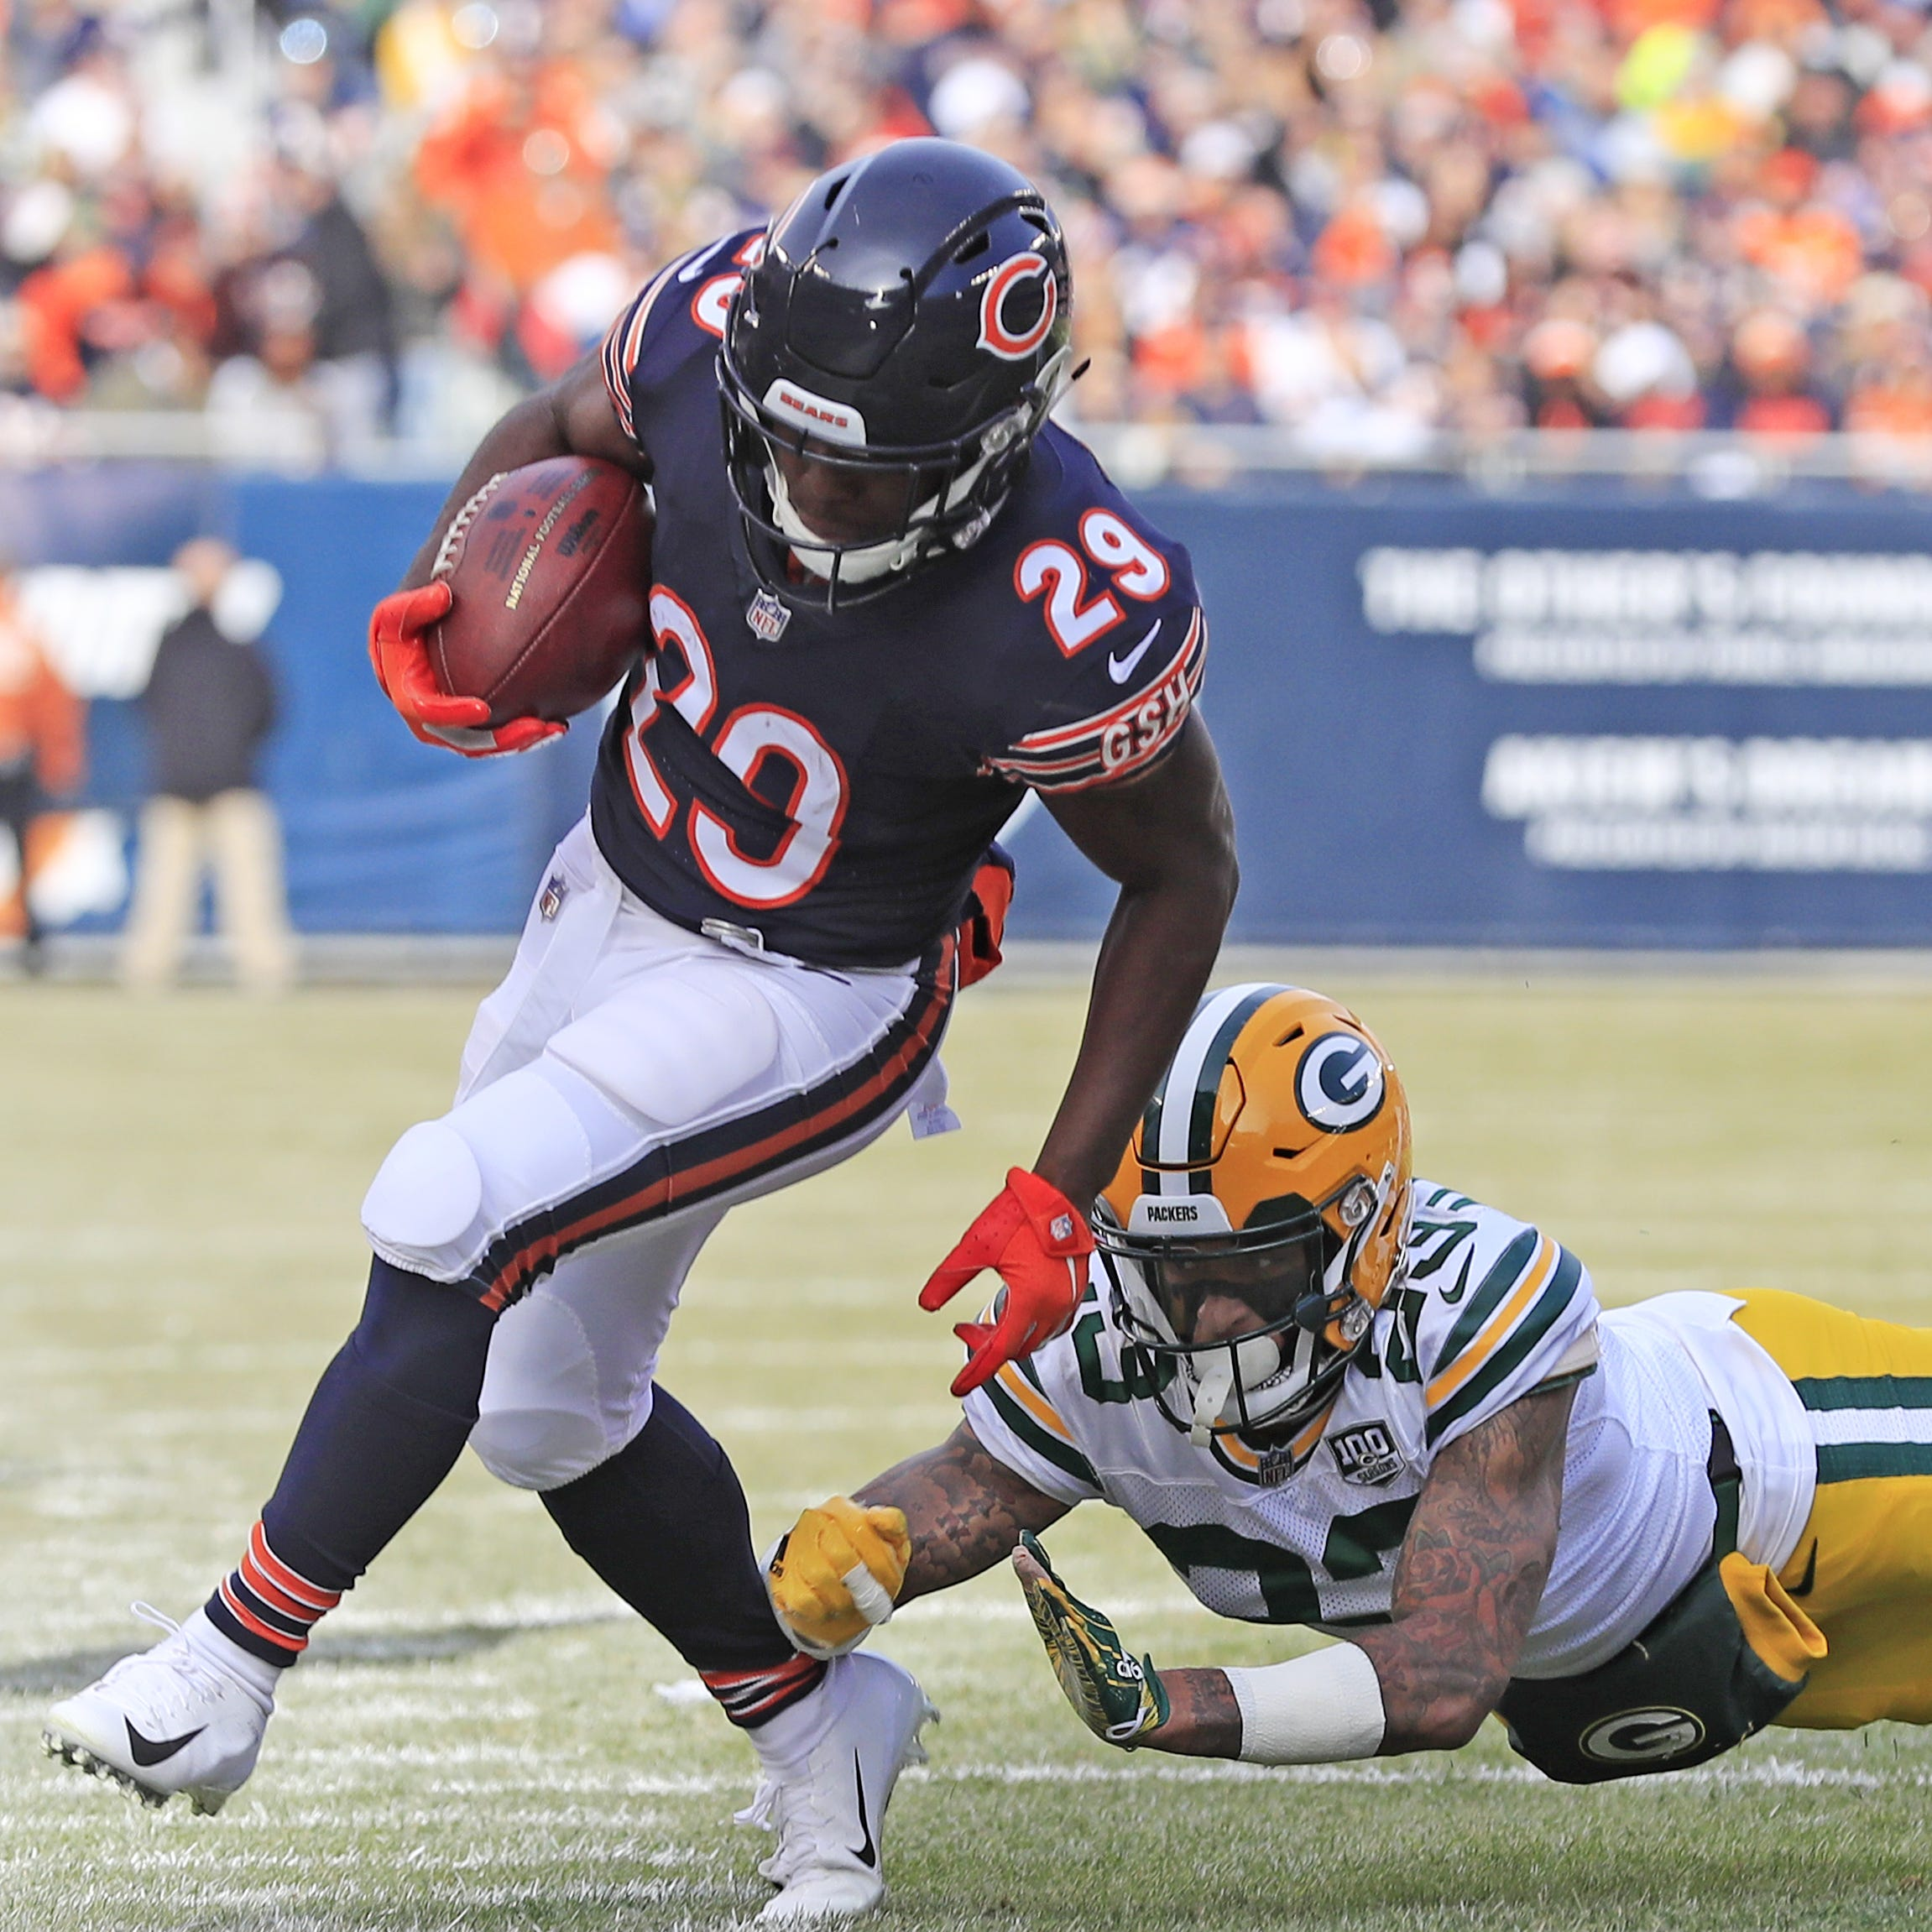 Quick takes: Packers out of playoff race after 24-17 loss to division champ Bears